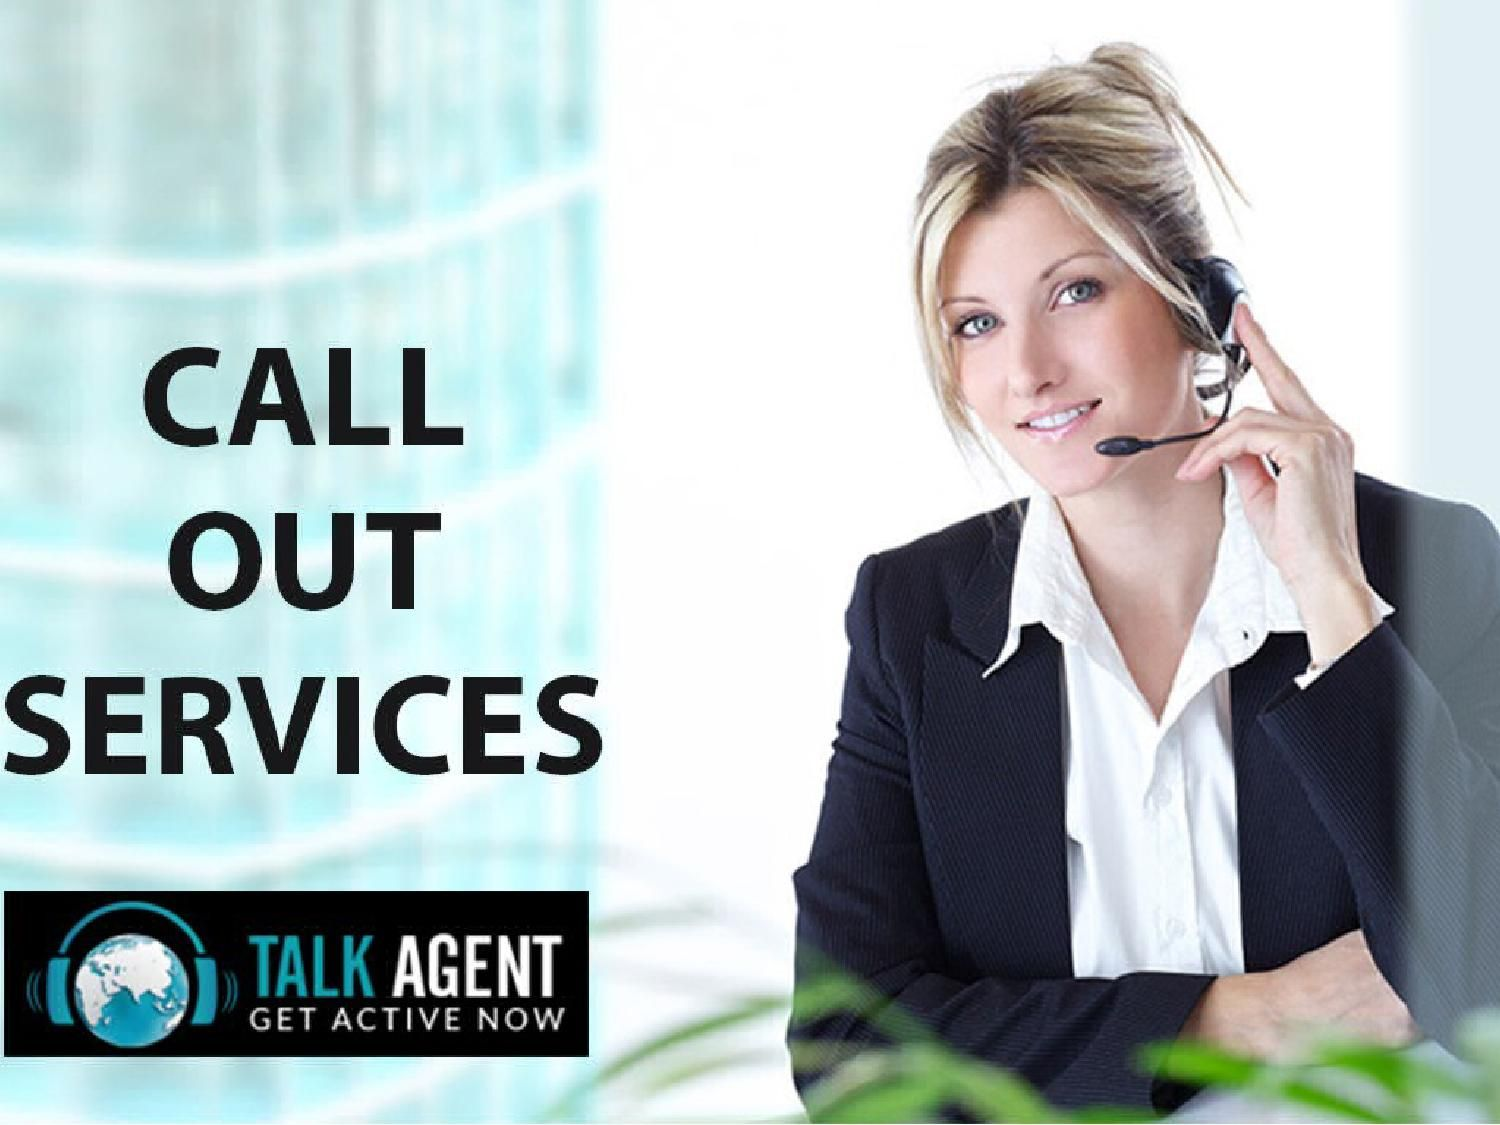 Call Out Services From Talk Agent Live chat service